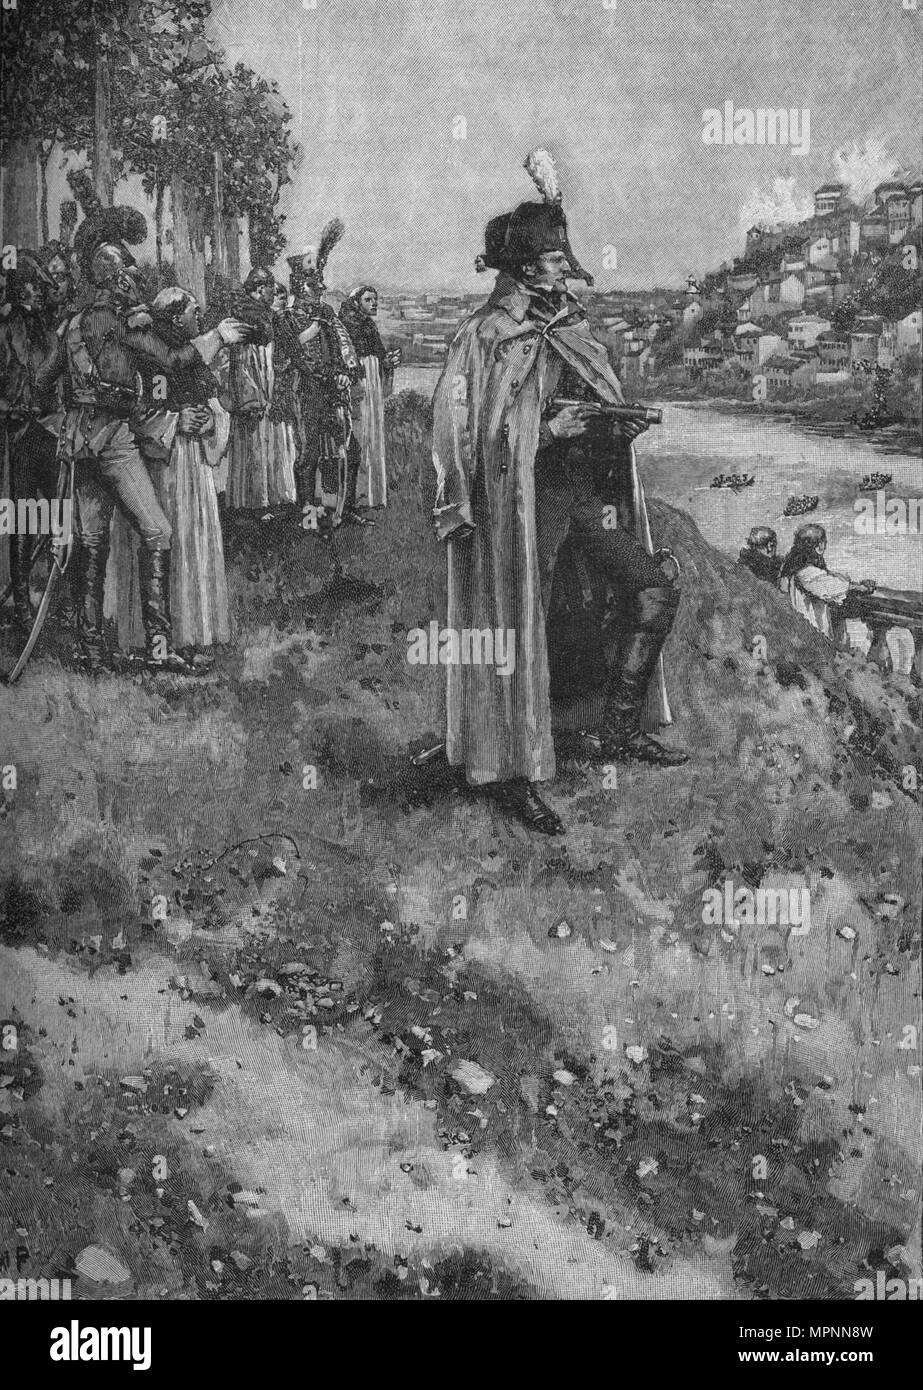 'The Passage of the Douro', 1902. Artist: WP. - Stock Image